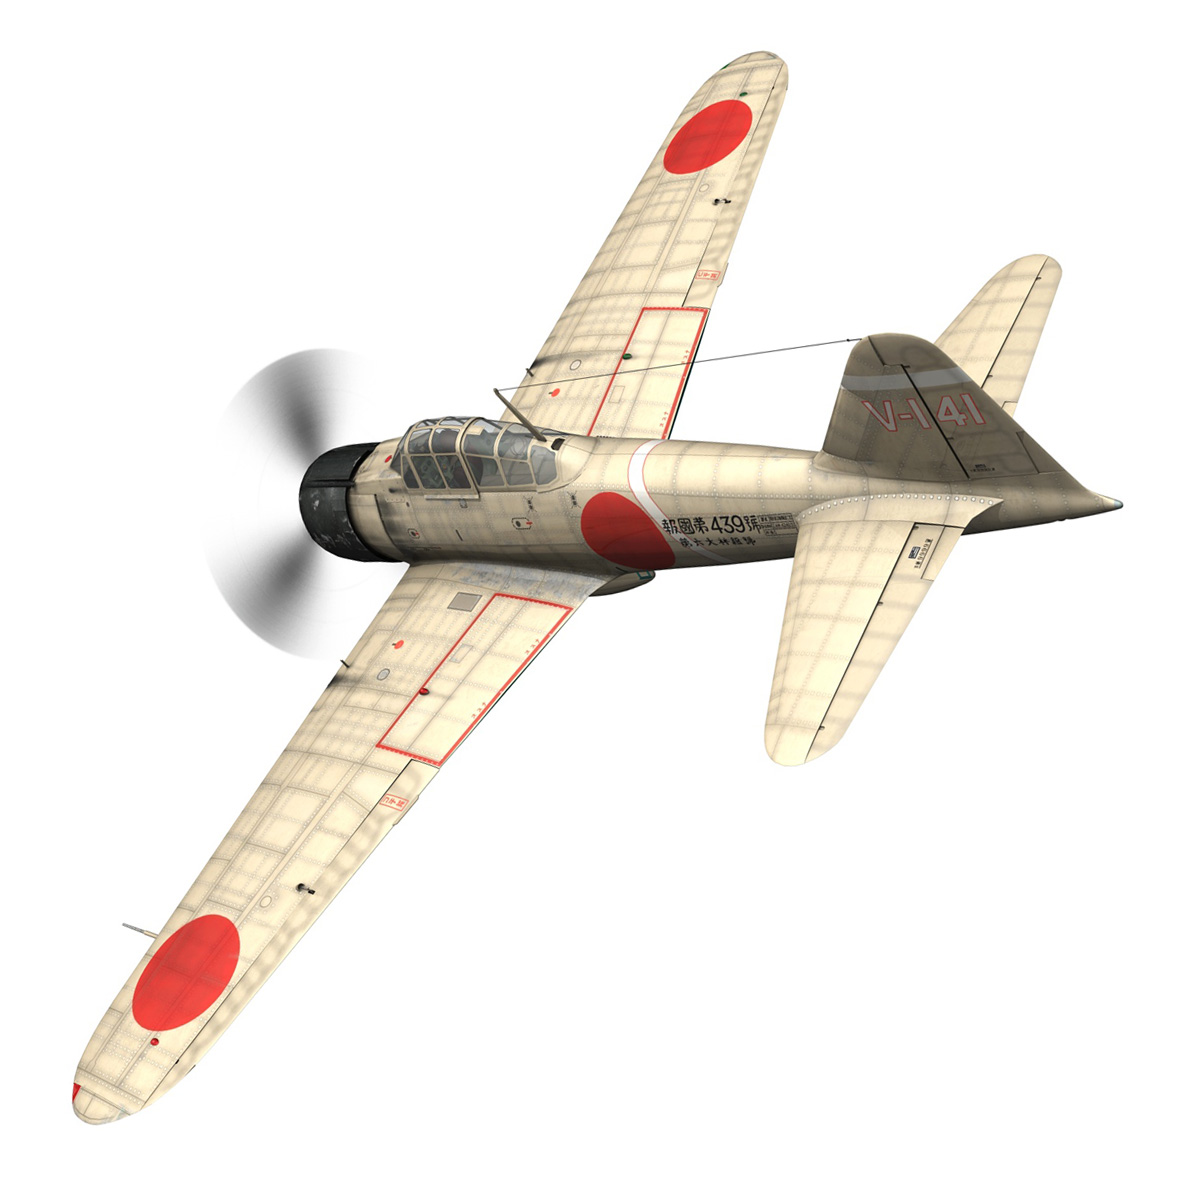 mitsubishi a6m2 zero – tainan air group 3d model fbx lwo obj 272727